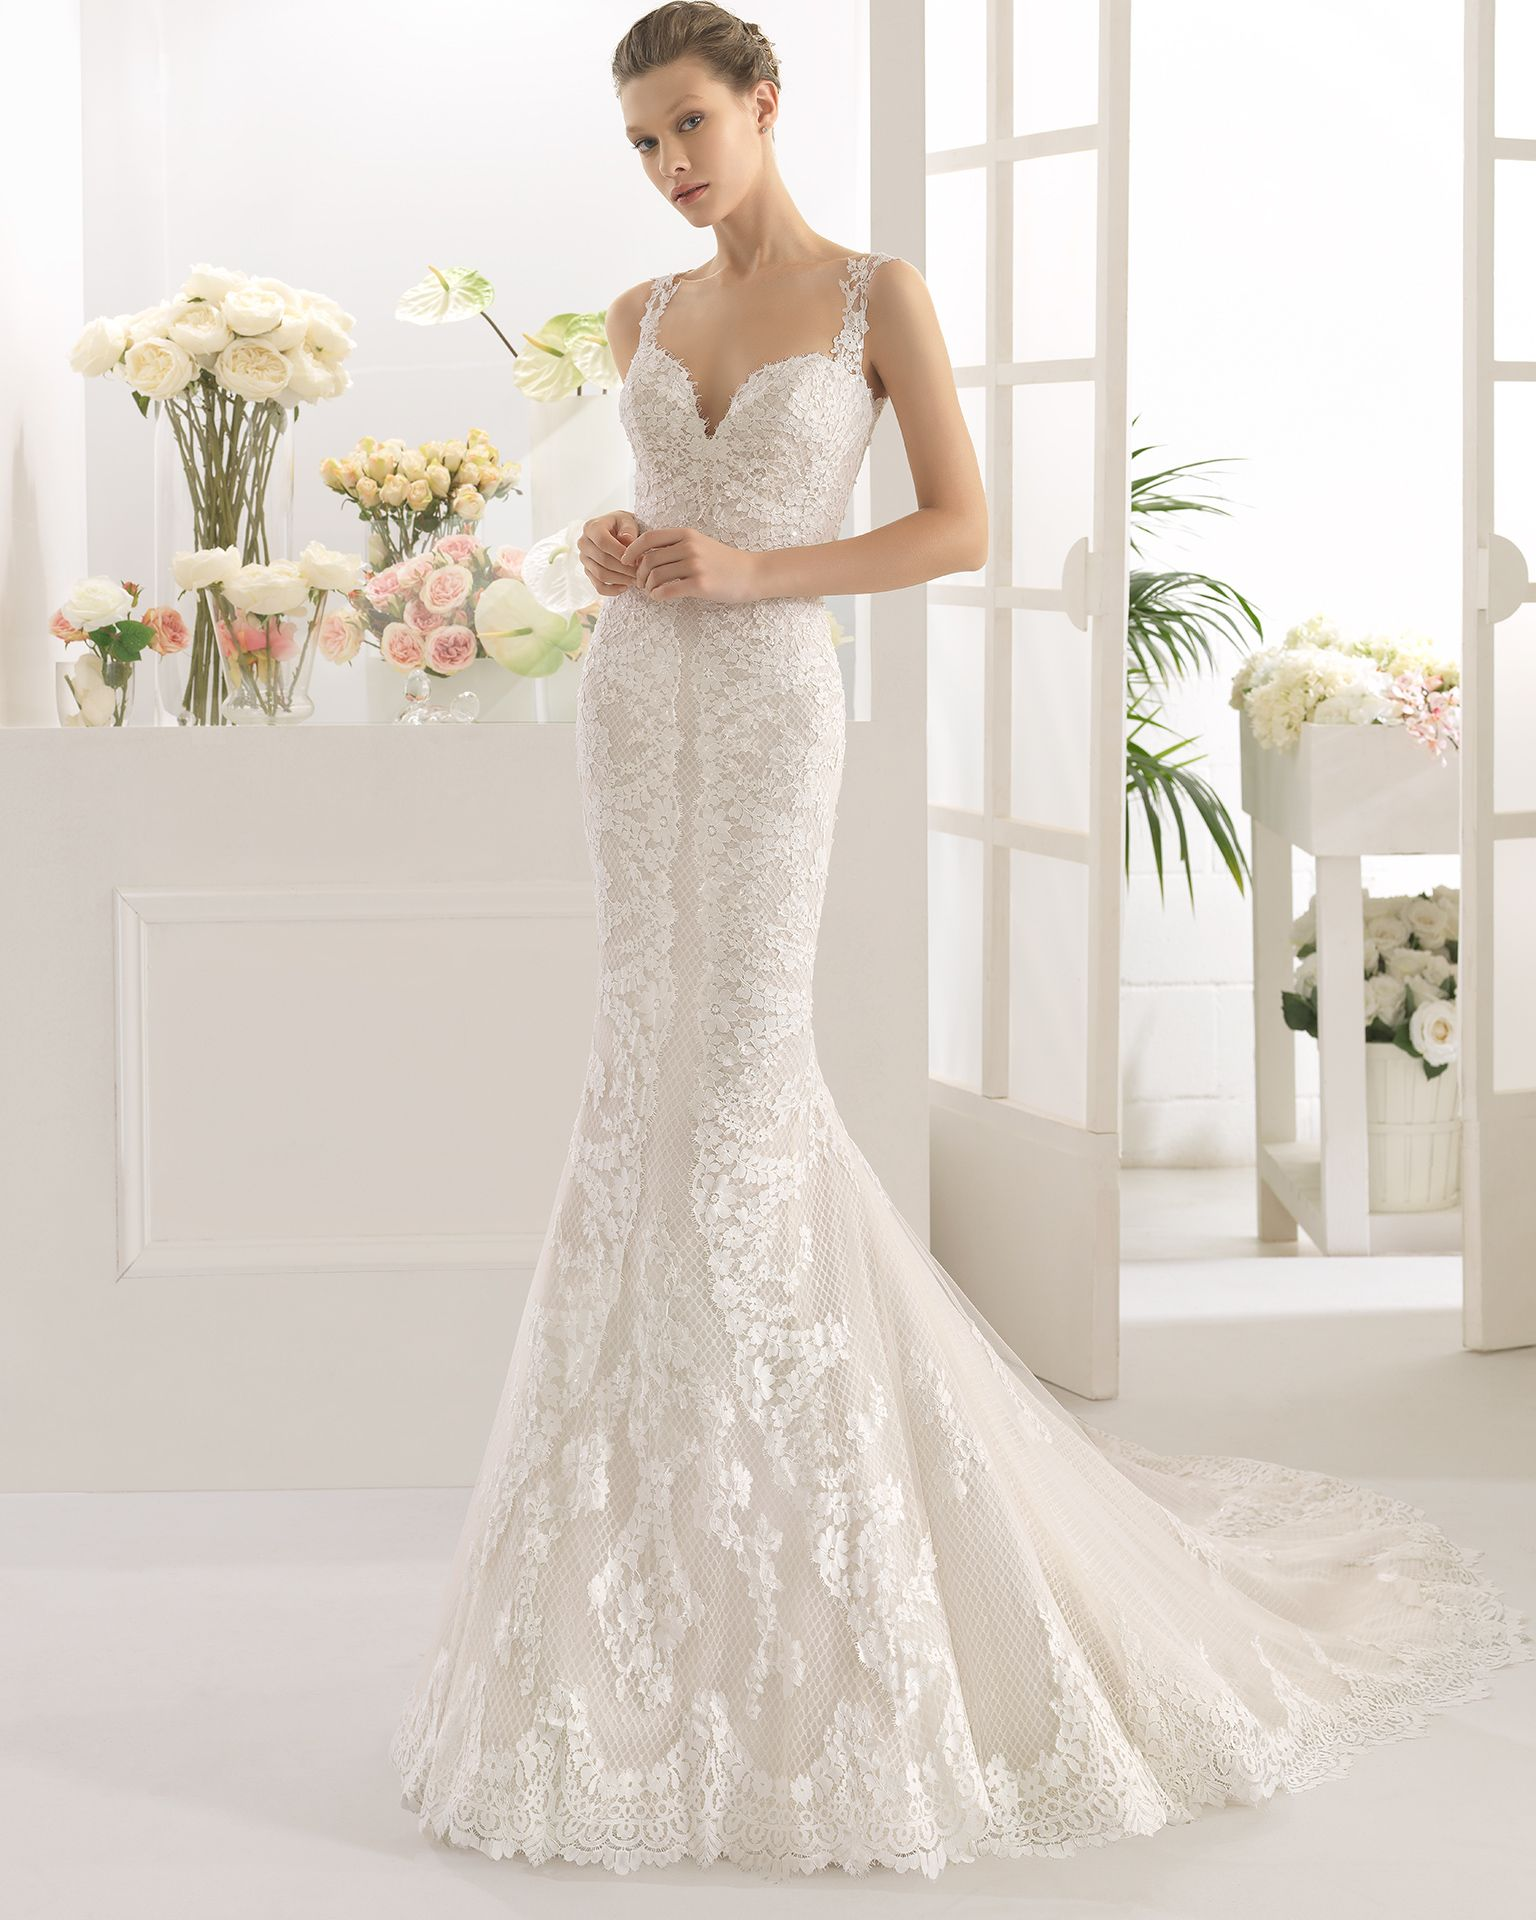 Cache vestido de encaje pedrera boda pinterest wedding aire barcelona 2017 bridal collection has detachable skirts luxe fabrics and some of the prettiest wedding dresses you will ever lay your eyes upon ombrellifo Choice Image